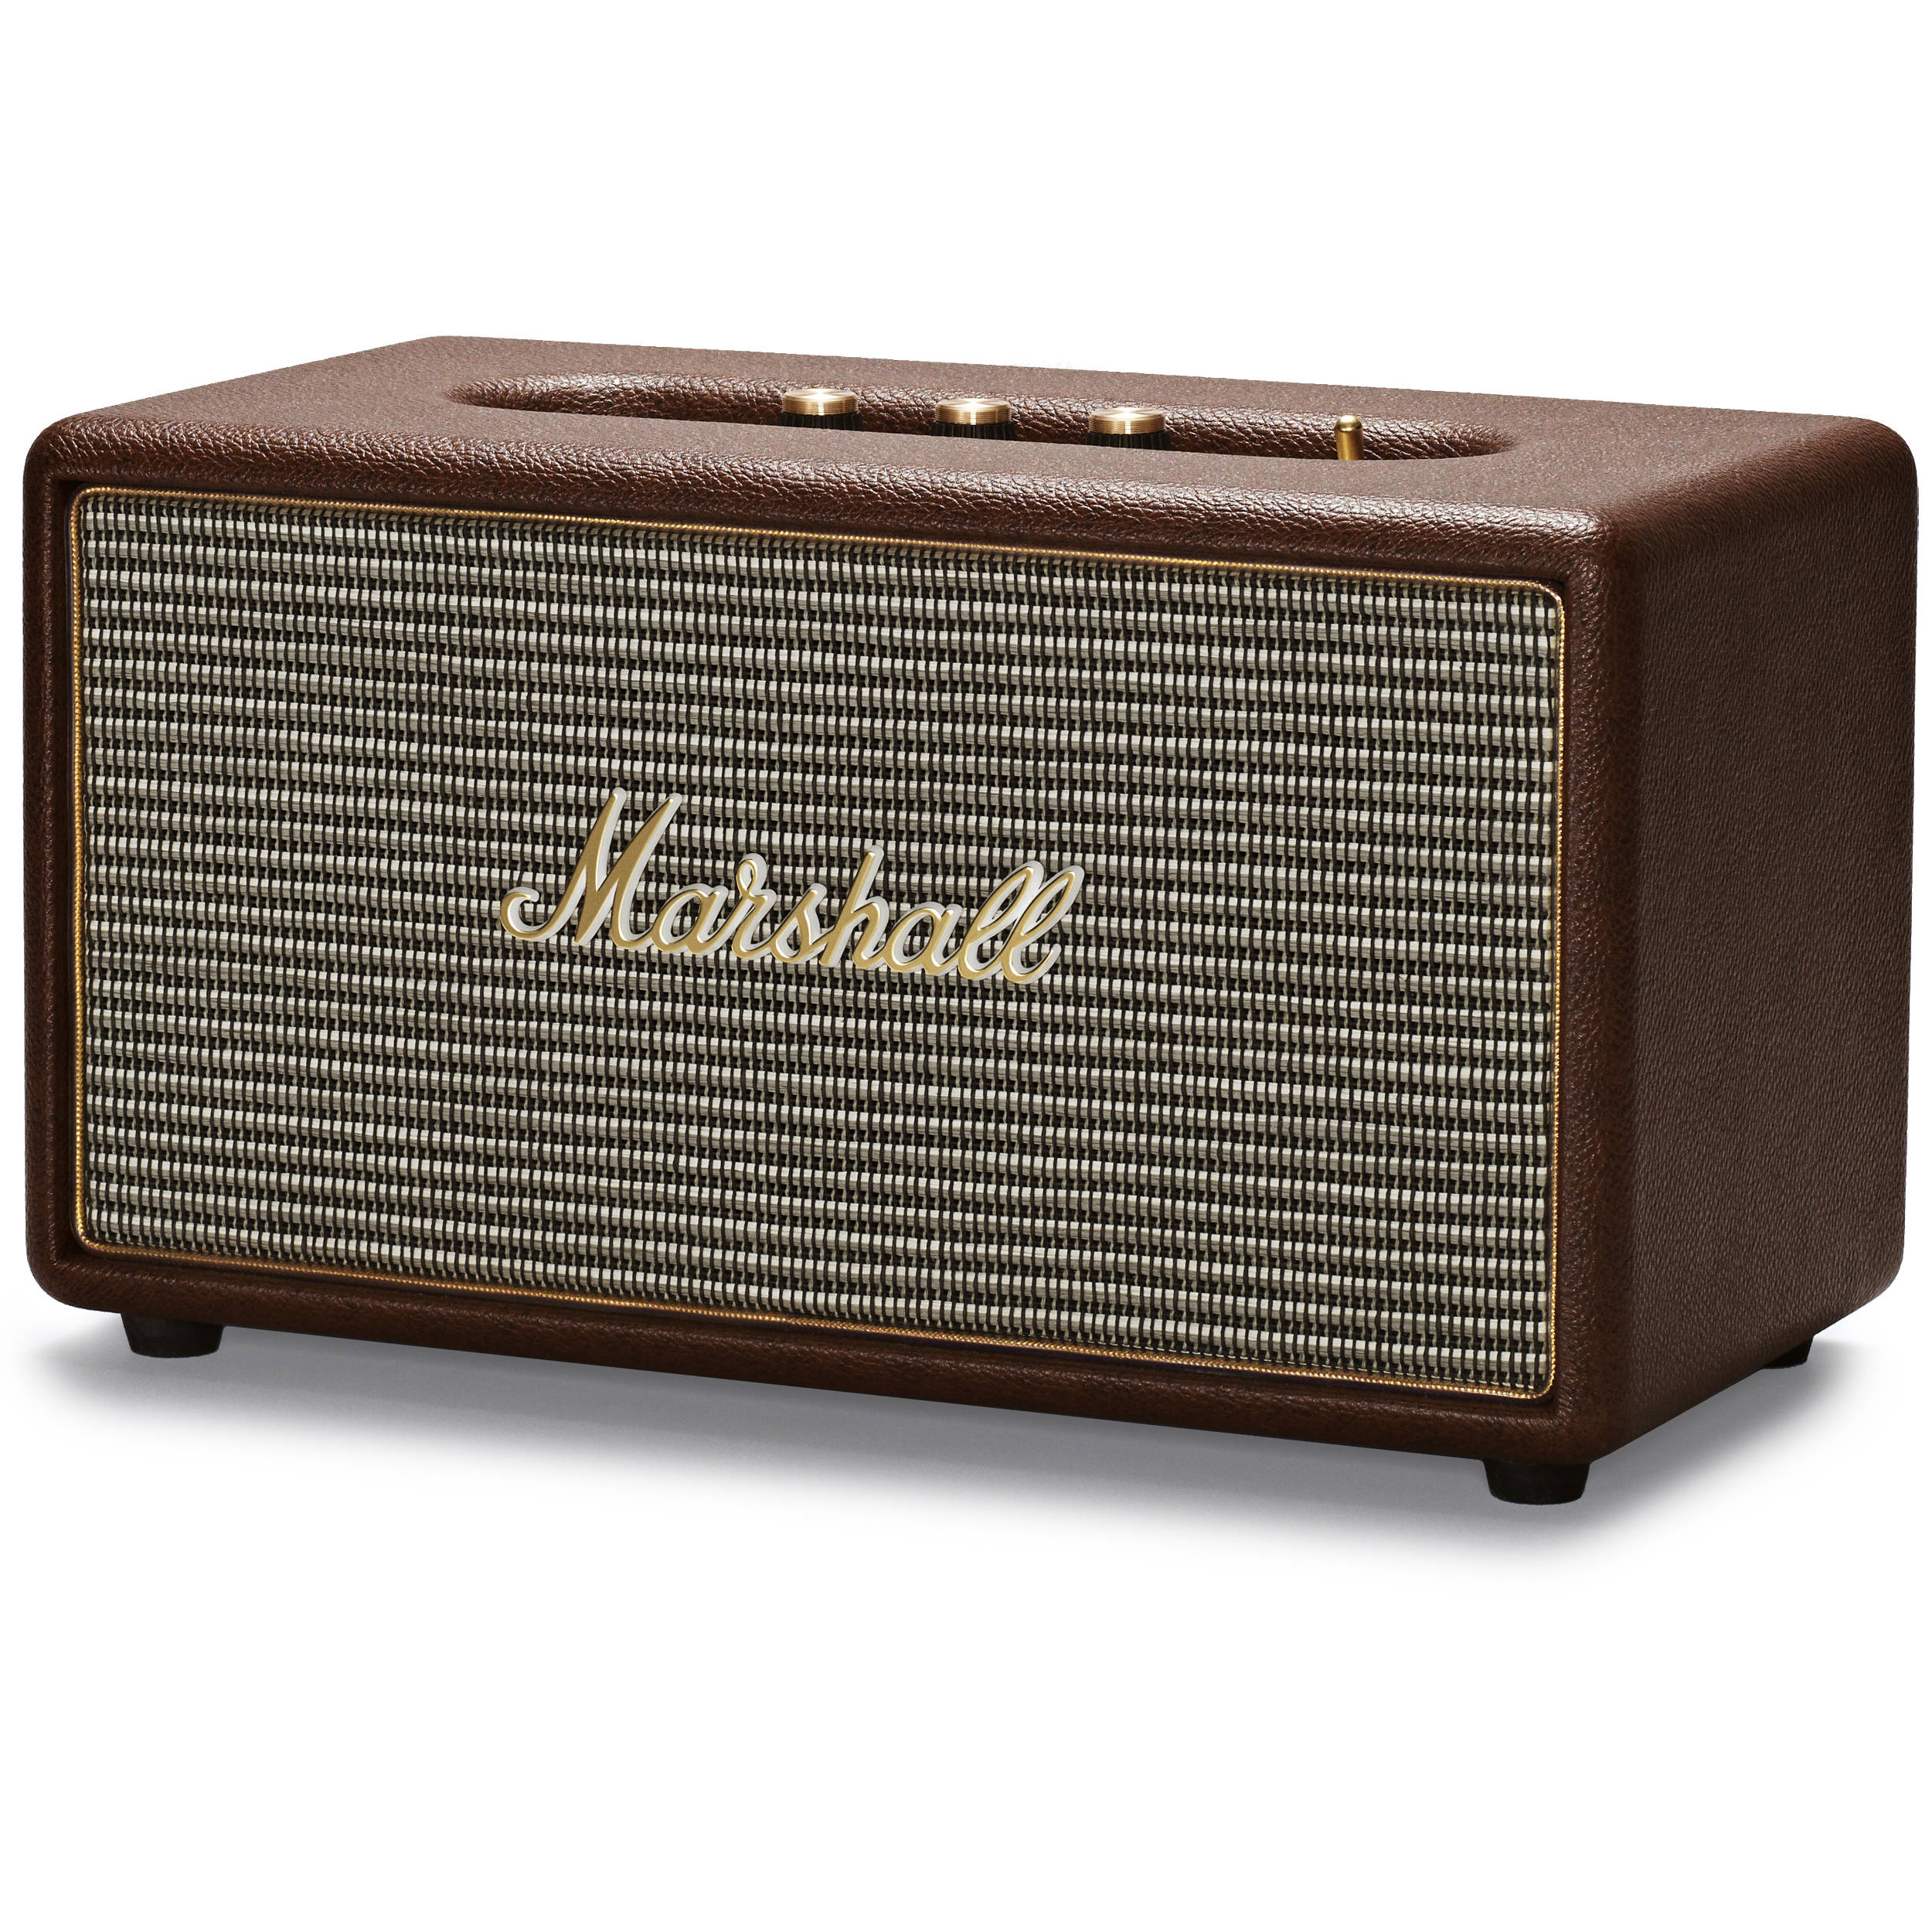 Marshall Audio Stanmore Bluetooth Speaker System Brown 4091628 Input Jack Wiring